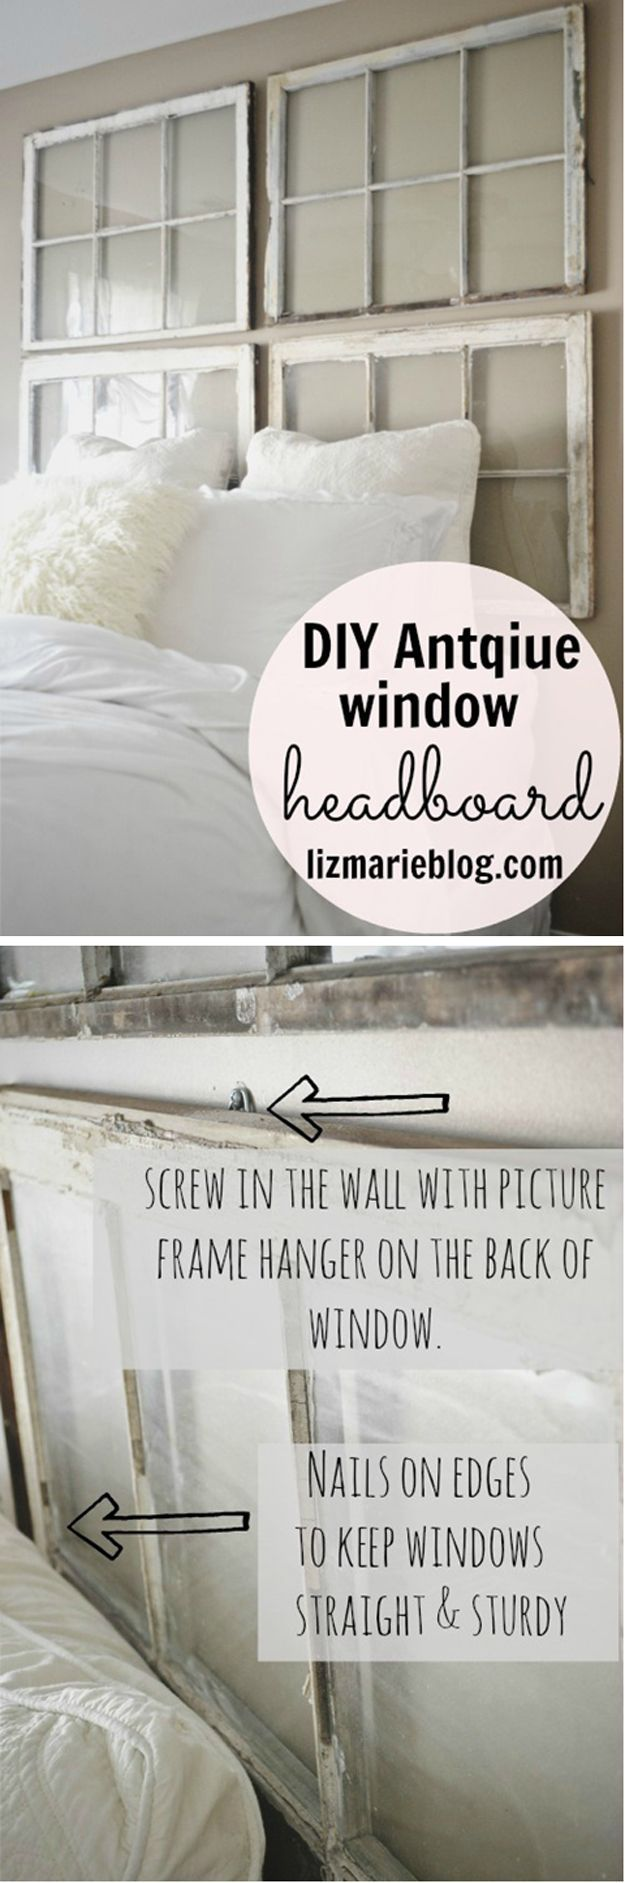 best 25 window headboard ideas on pinterest window pane